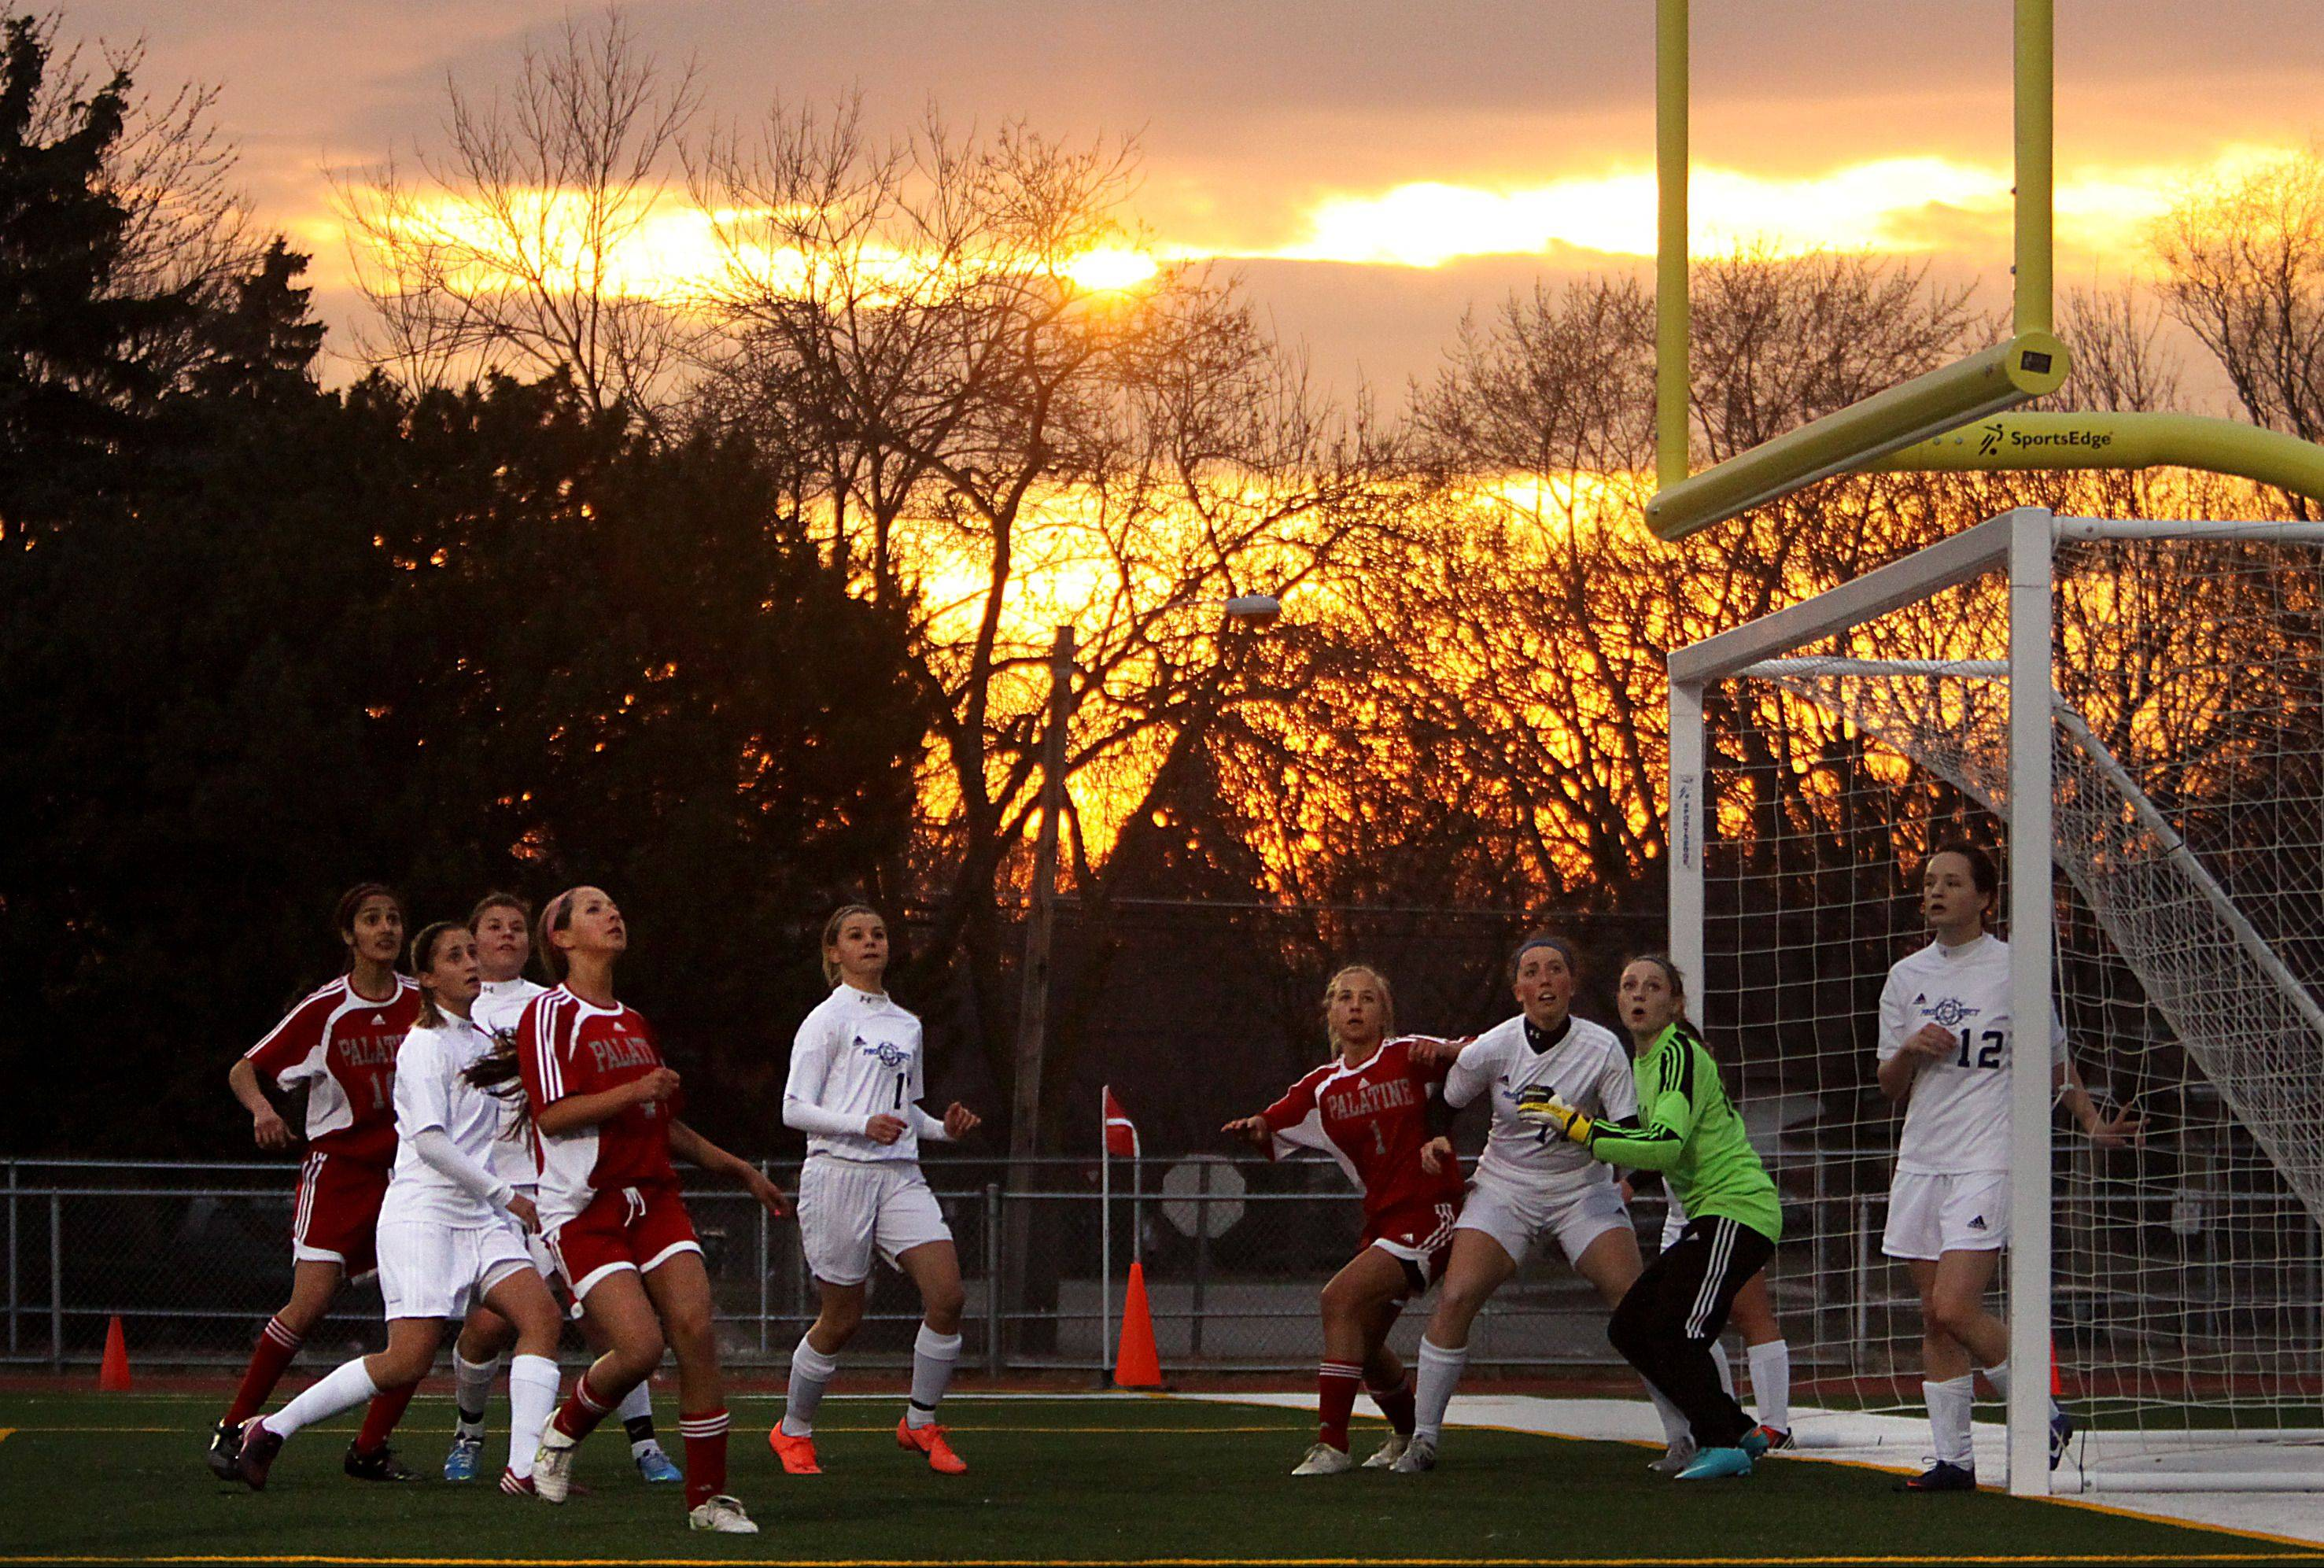 Prospect and Palatine players prepare for an incoming corner kick at the Prospect goal during Thursday evening's game at George Gattas Memorial Stadium at Prospect.